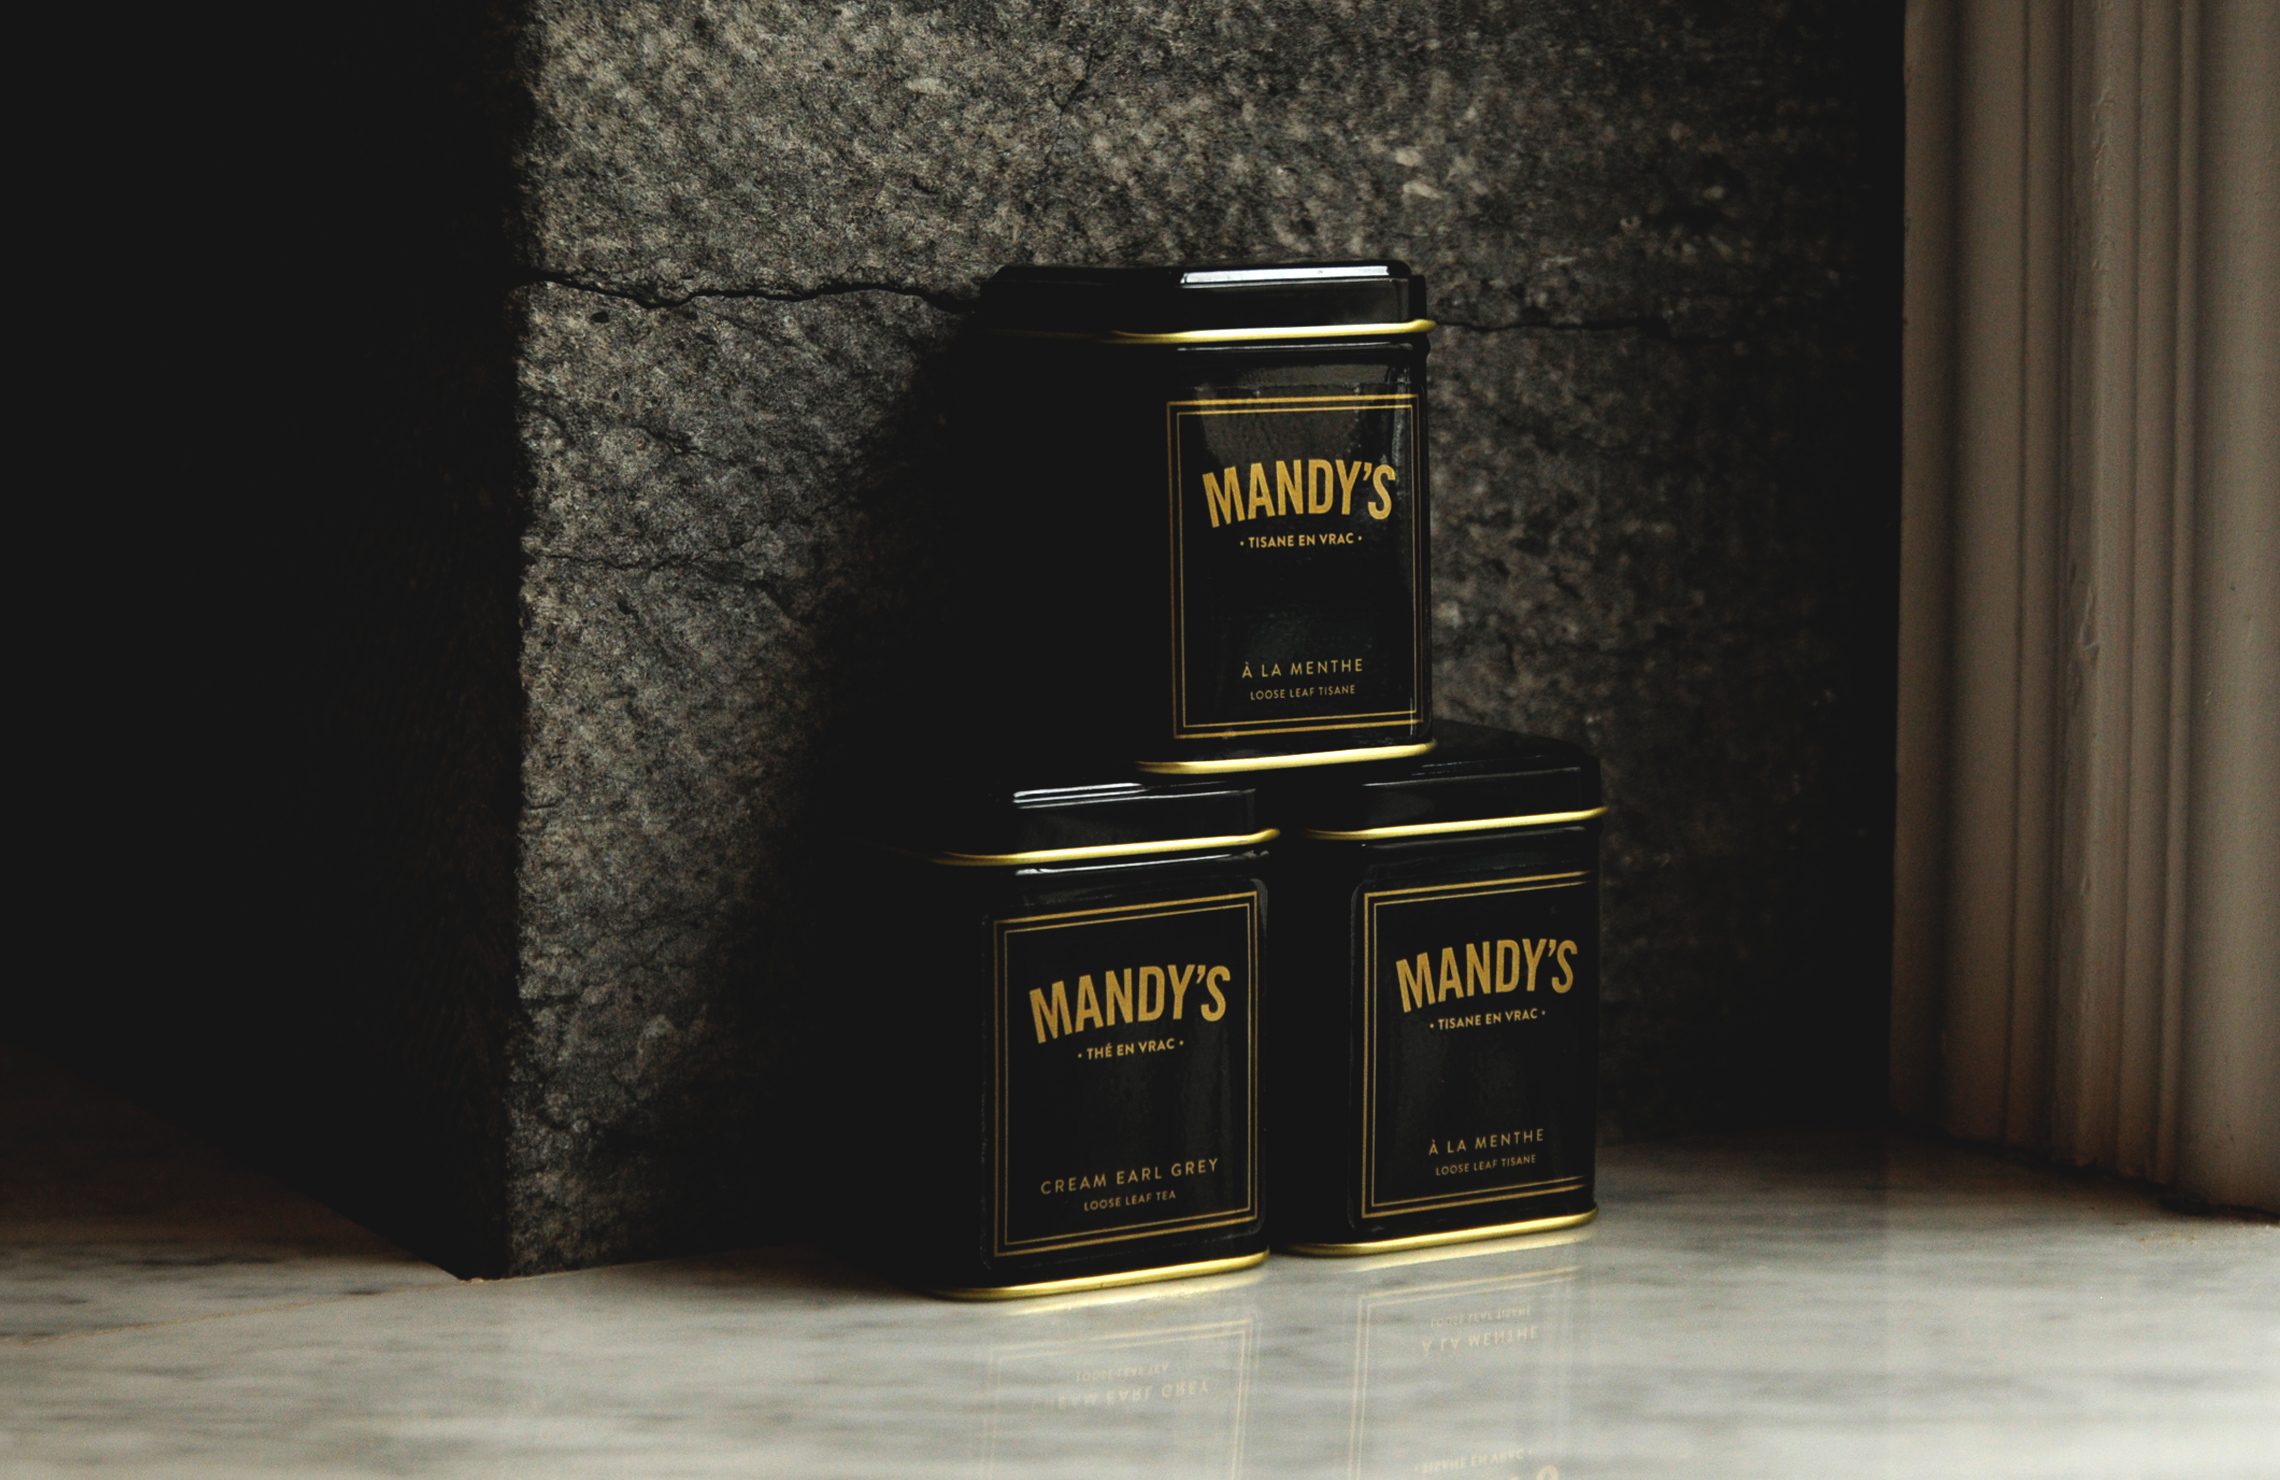 mandys-packaging-11